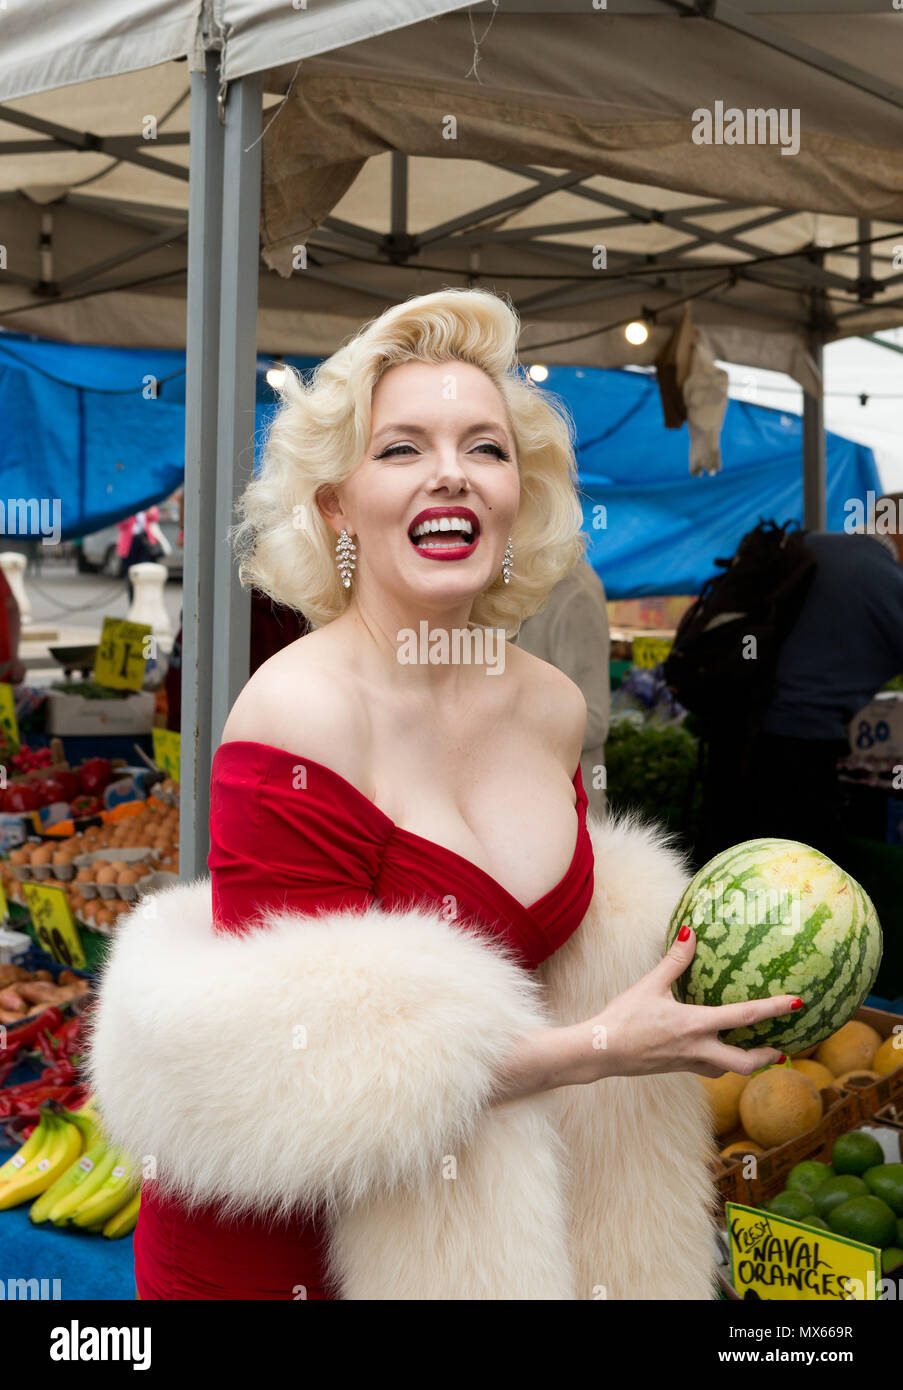 Bury St Edmunds, UK. 2nd Jun, 2018. Suzie Kennedy the world's leading Marilyn Monroe tribute artist, making her way through the market on her way to open the 'Timeless' exhibition at Moyses Hall, Bury St Edmunds, UK which includes stunning images from Marilyn Monroe's very earliest days as a model; behind-the-scenes captures from her film-work; breathtaking location and studio work and emotive candid images that showcase her true personality in a unique and engaging way. Credit: Keith mindham/Alamy Live News Stock Photo